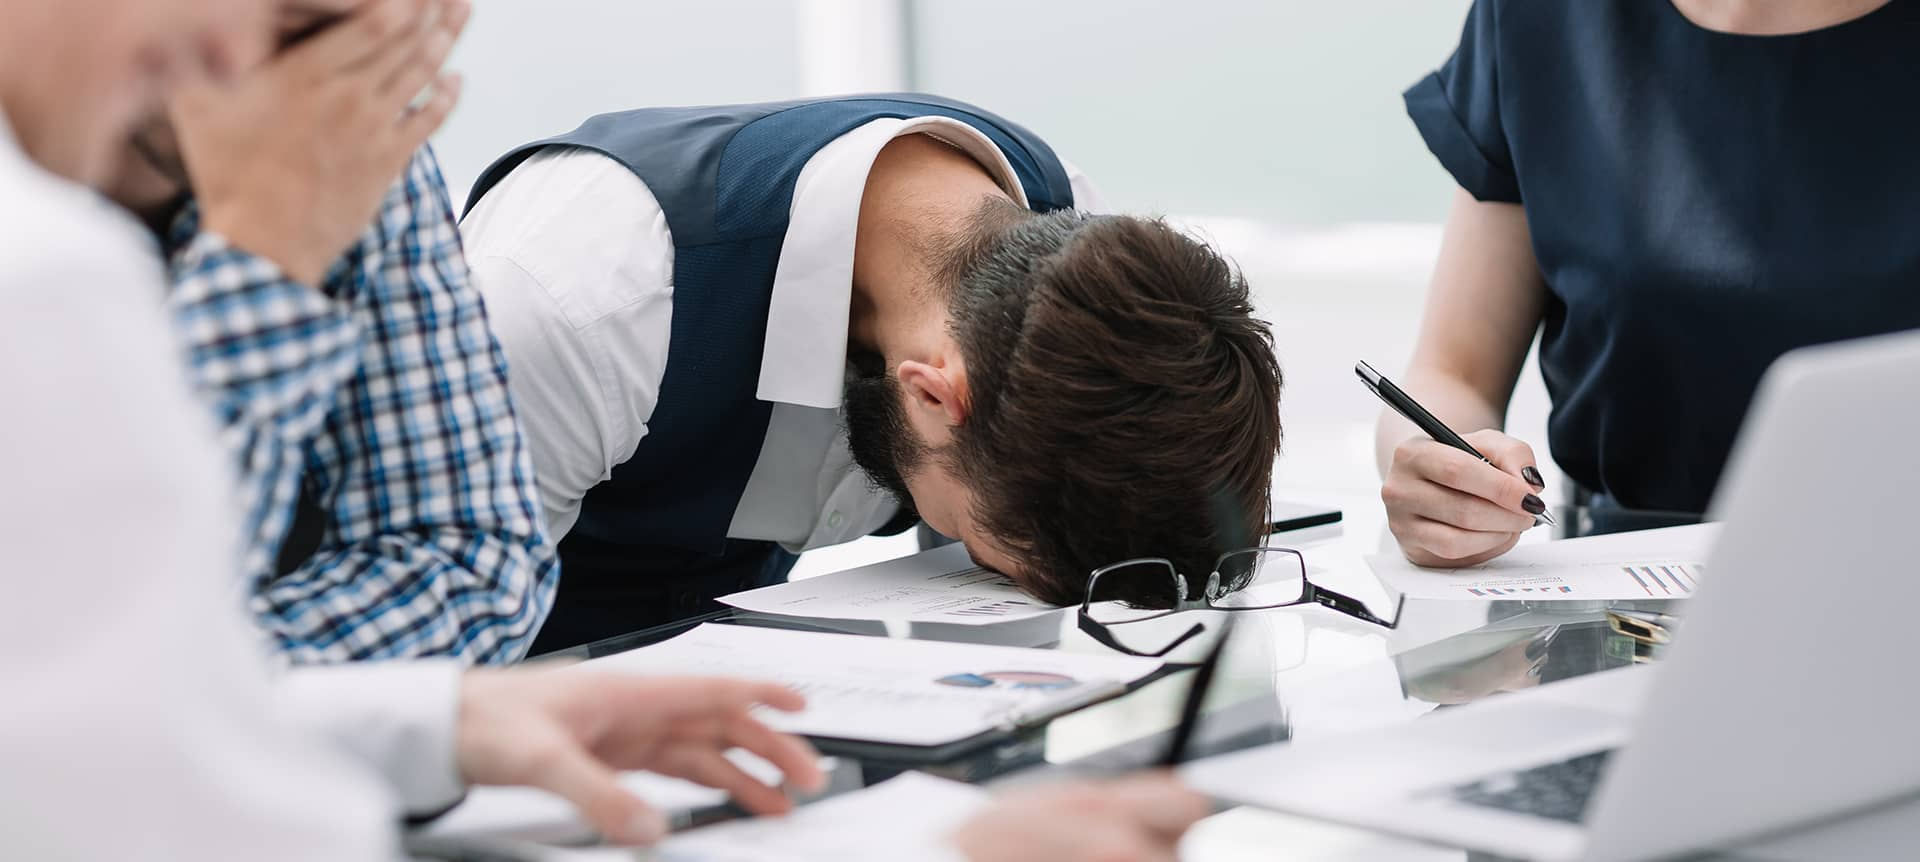 A picture of a made recruiter resting his head on a table, looking disengaged.